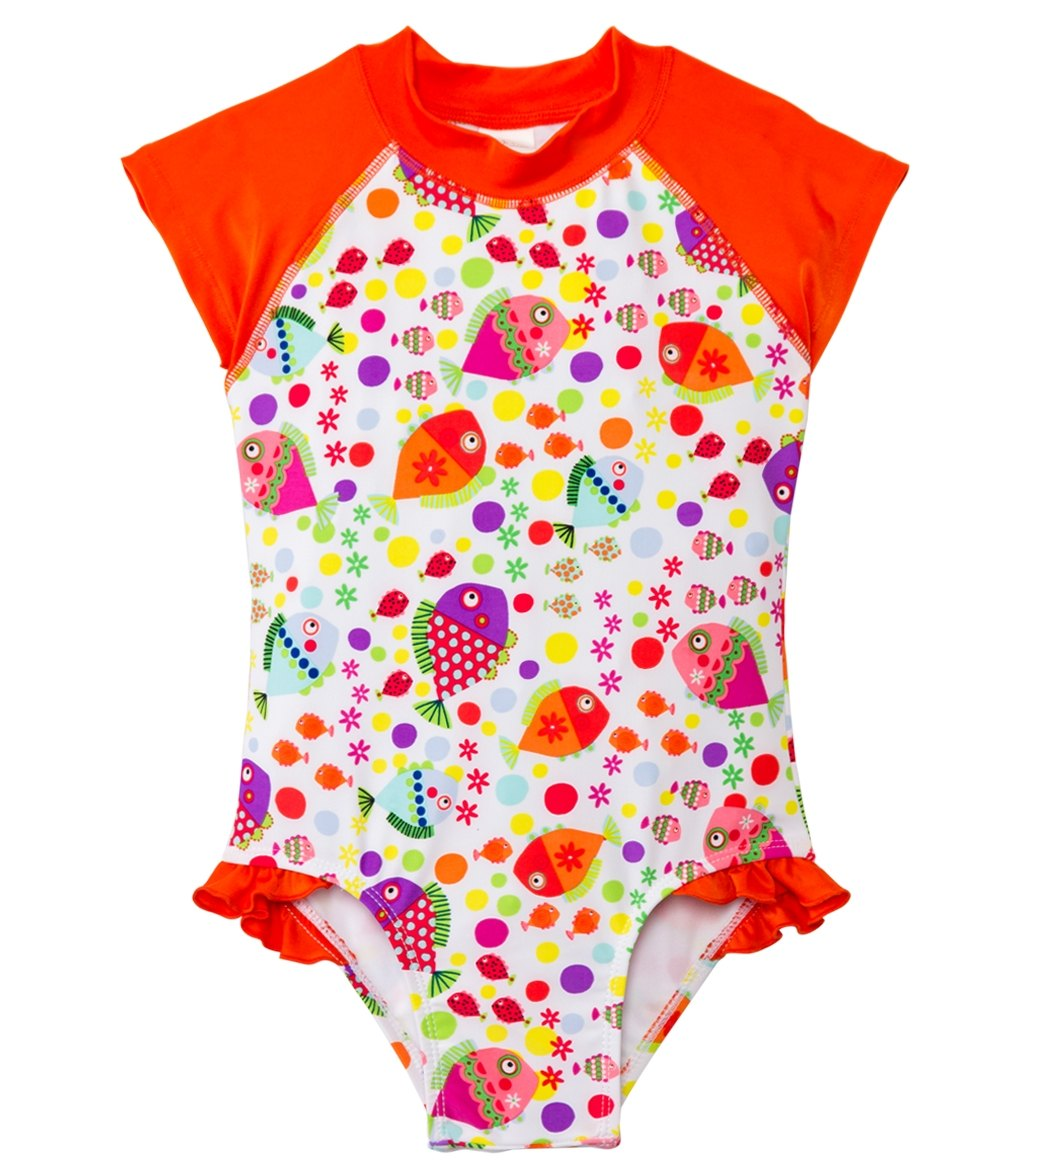 17cd3690cfd2f SnapMe Girls' Lucy Fish S/S Ruffle One Piece (6mos-4T) at ...